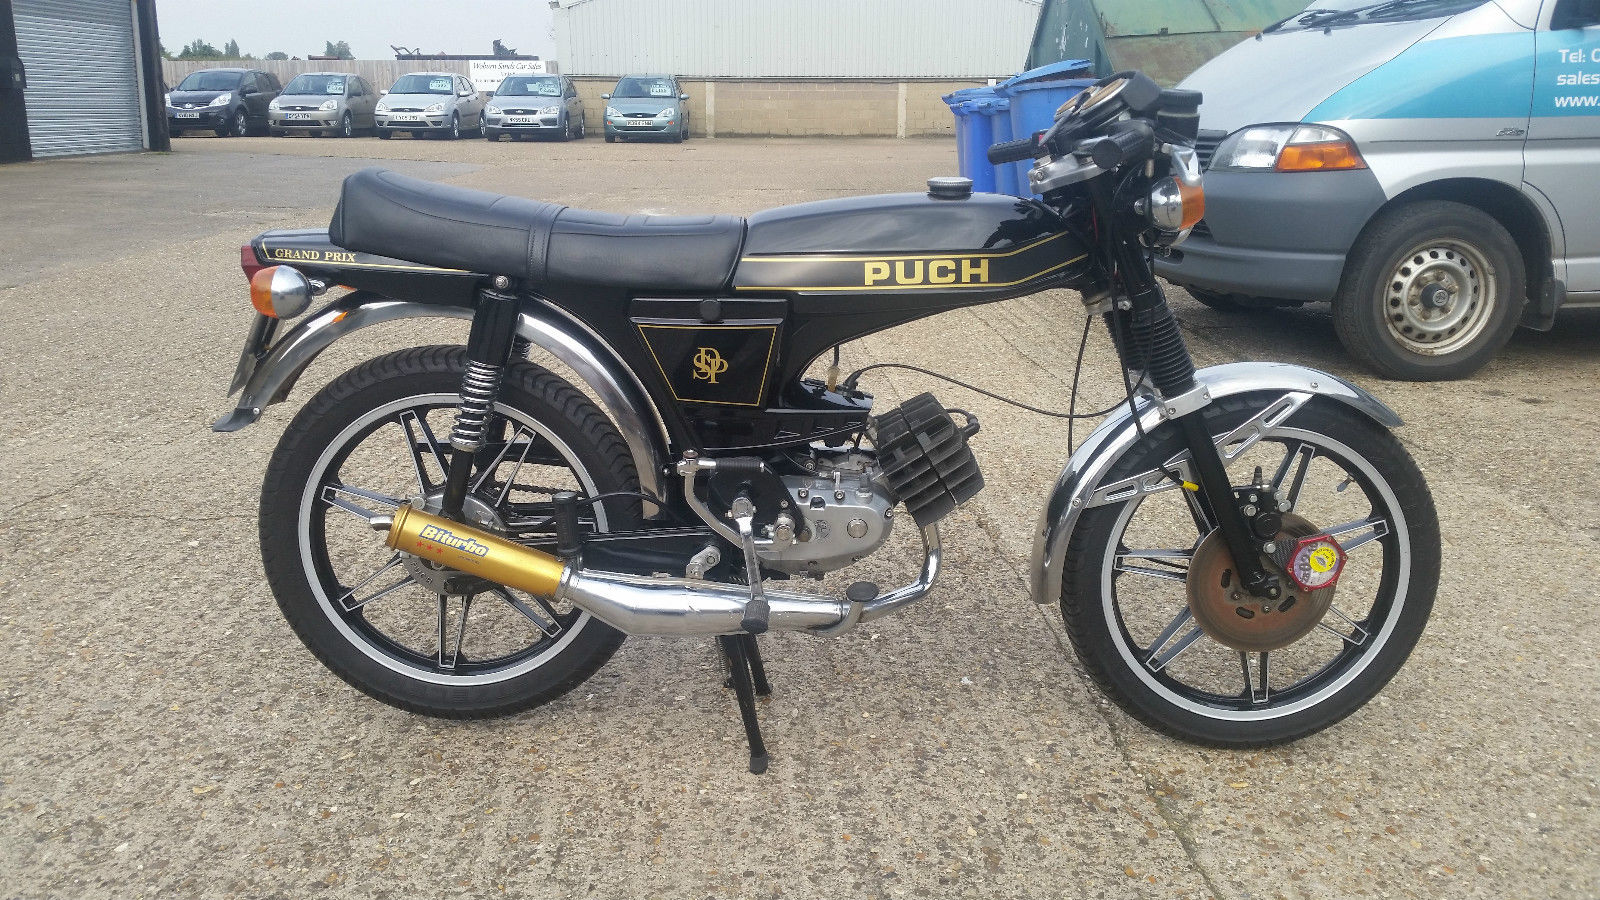 Restored Puch Grand Prix - 1976 Photographs at Classic Bikes